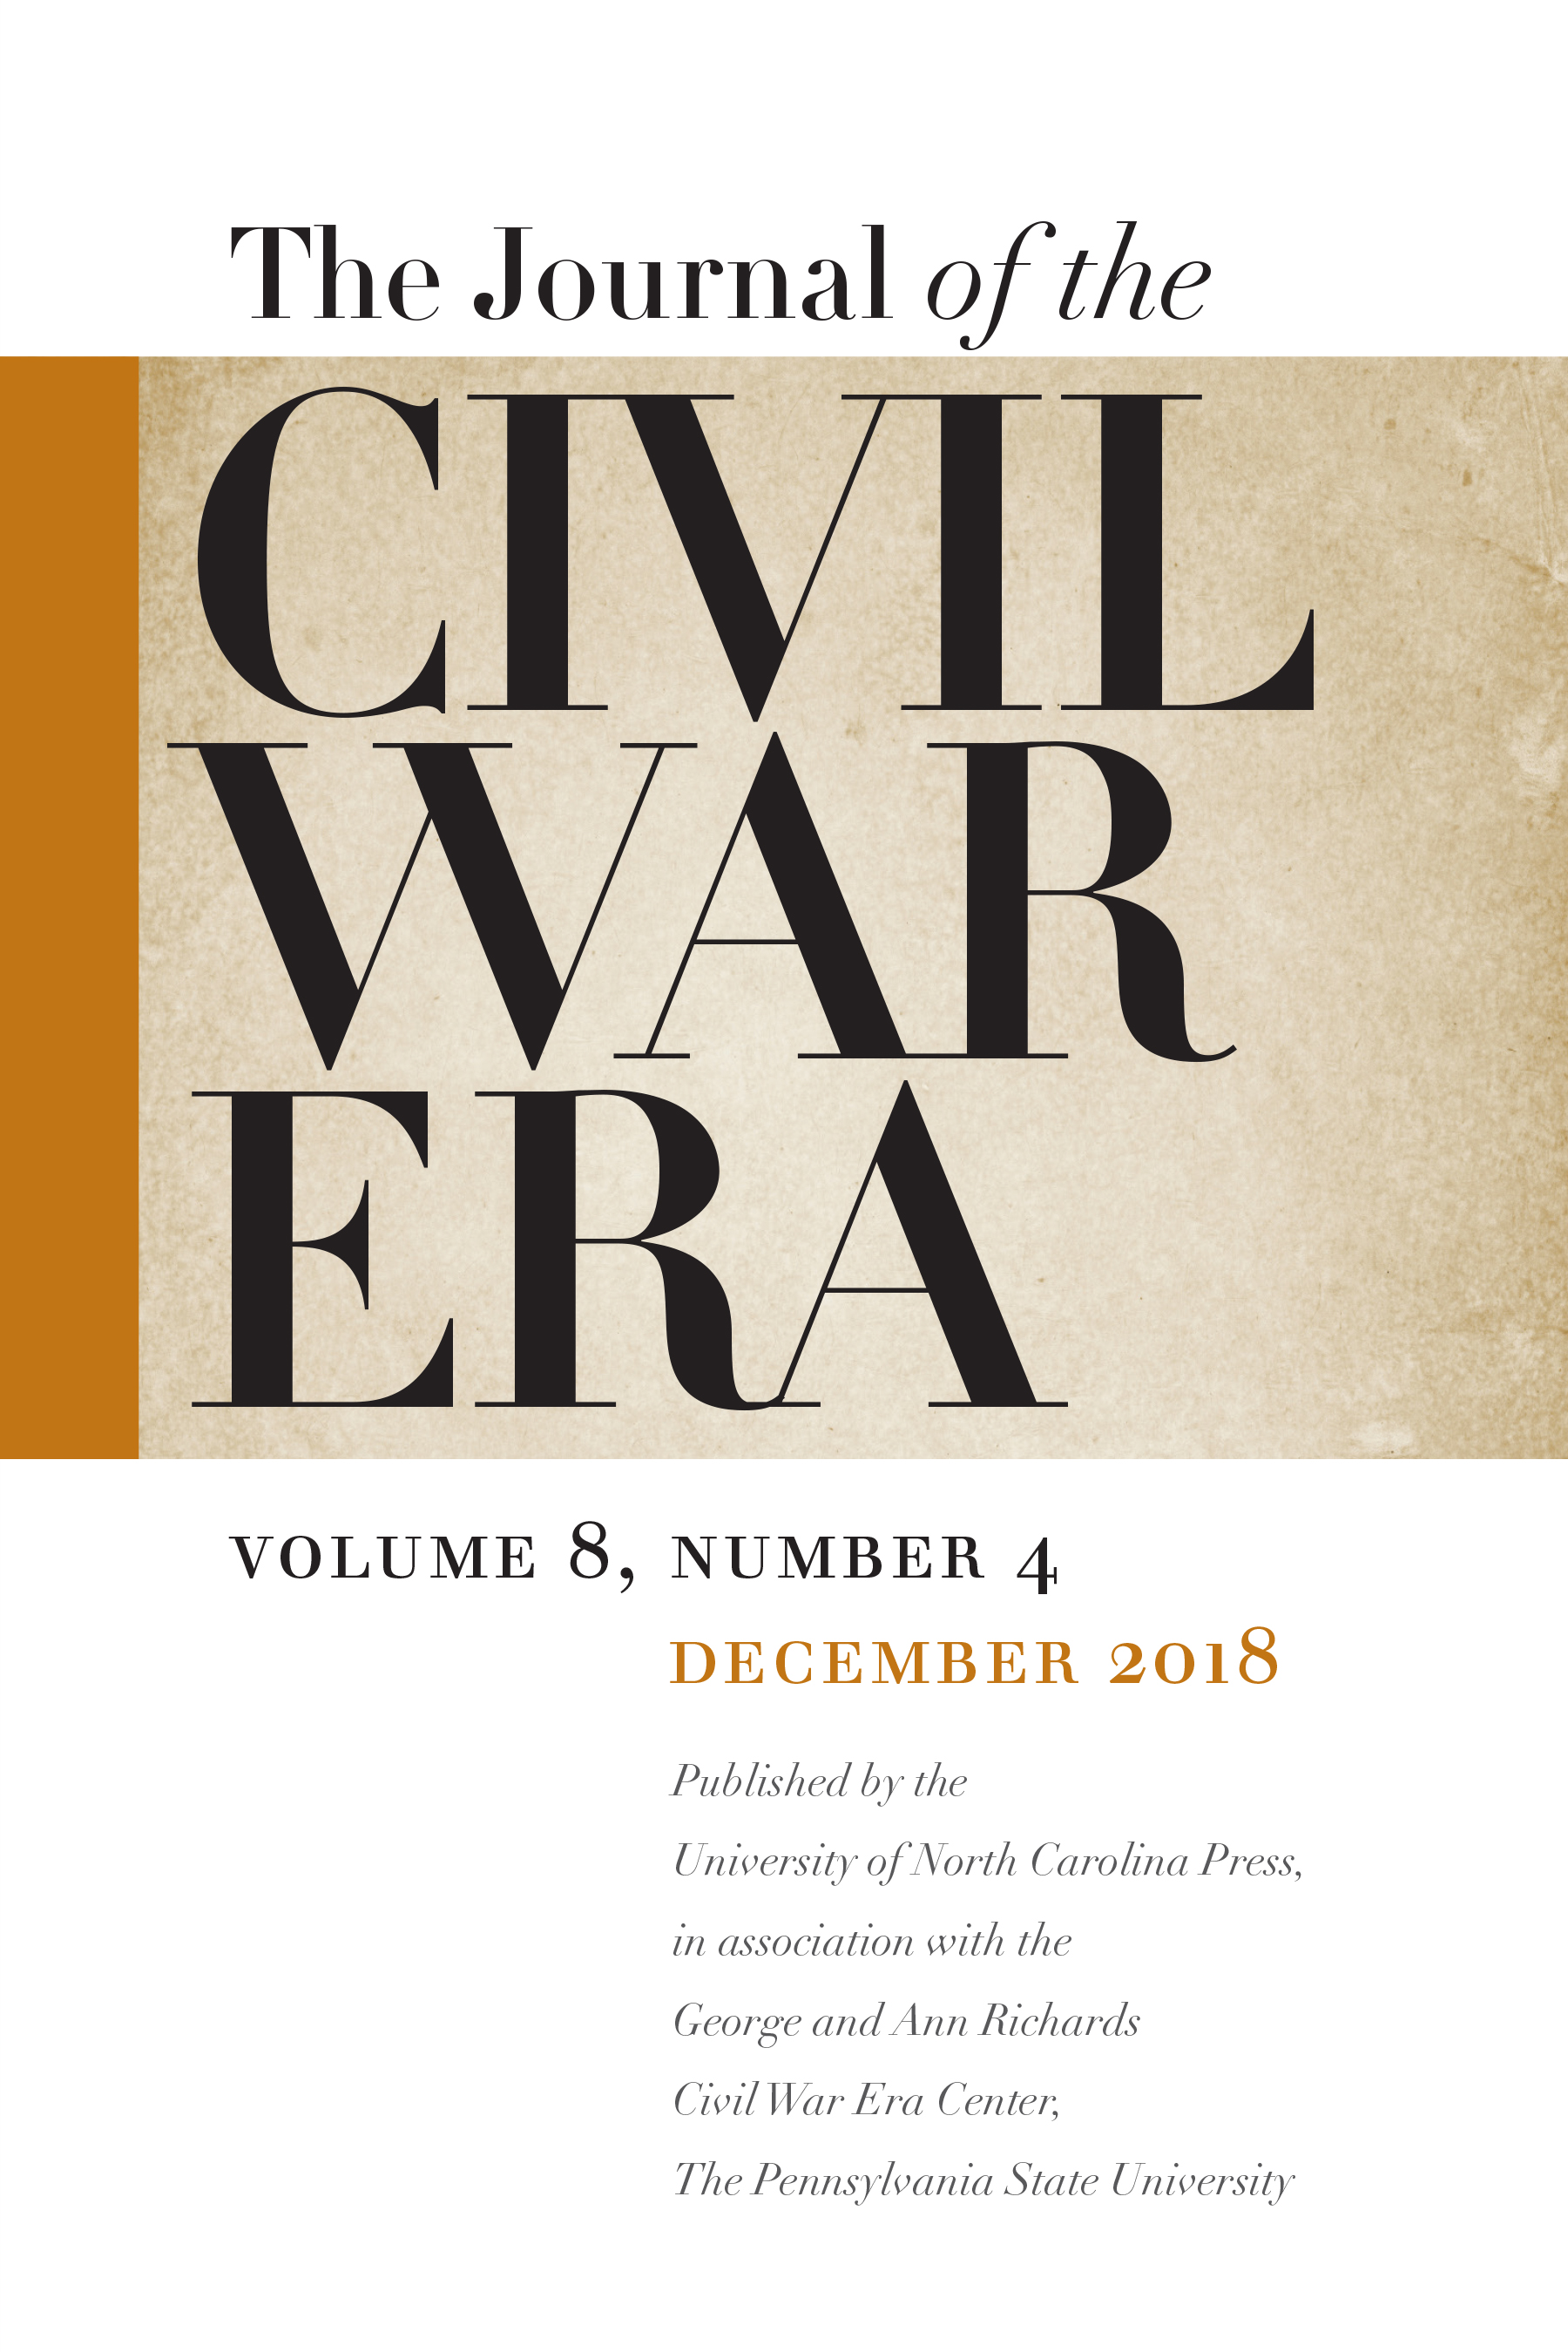 The Journal of the Civil War Era, vol. 8, no. 4, December 2018, Published by the University of North Carolina Press, in association with the George and Ann Richards Civil War Era Center, The Pennsylvania State University